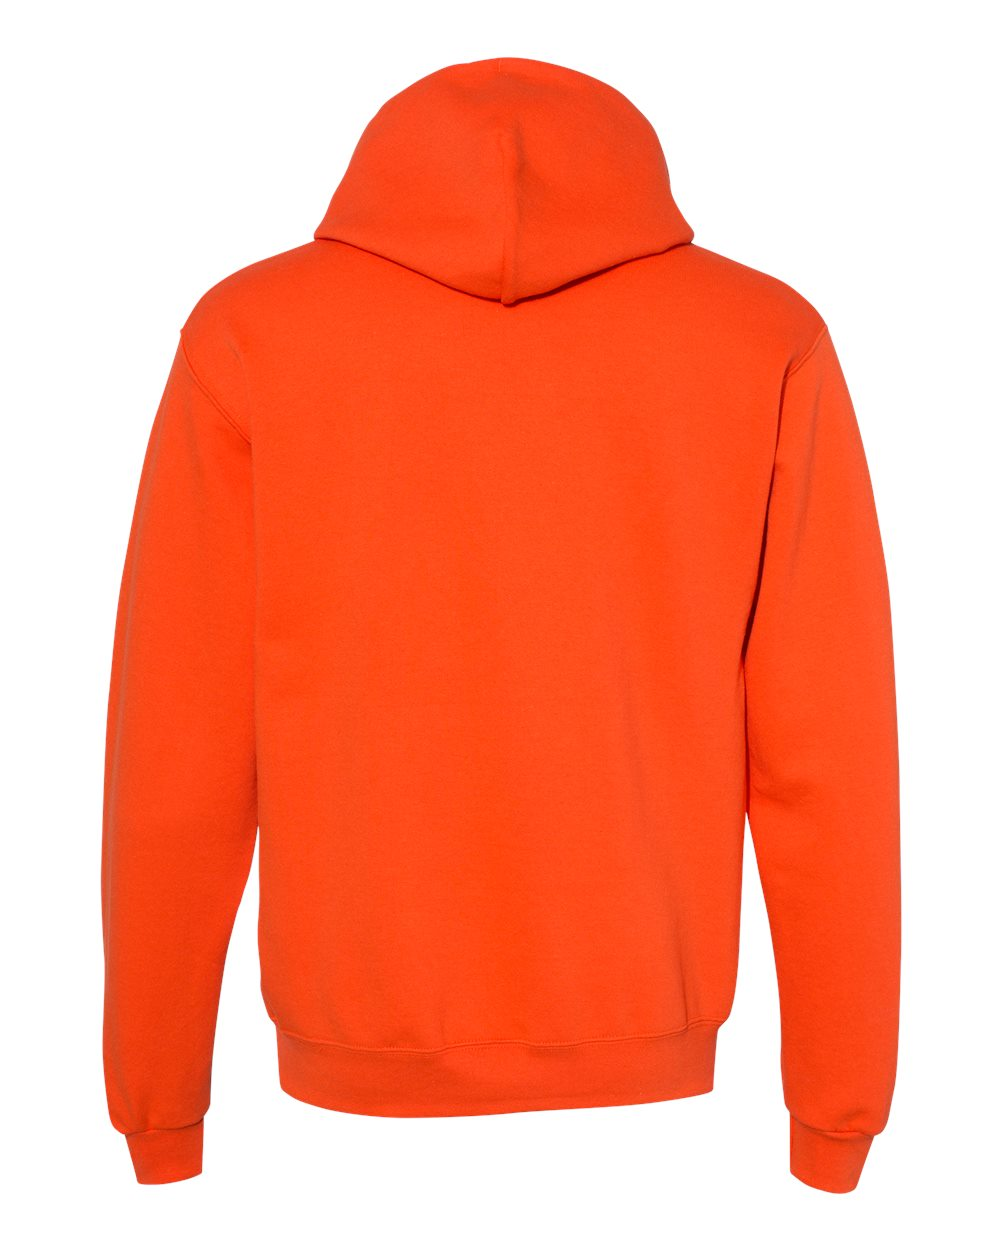 Champion-Mens-Double-Dry-Eco-Hooded-Sweatshirt-Hoodie-Pullover-S700-up-to-3XL miniature 34